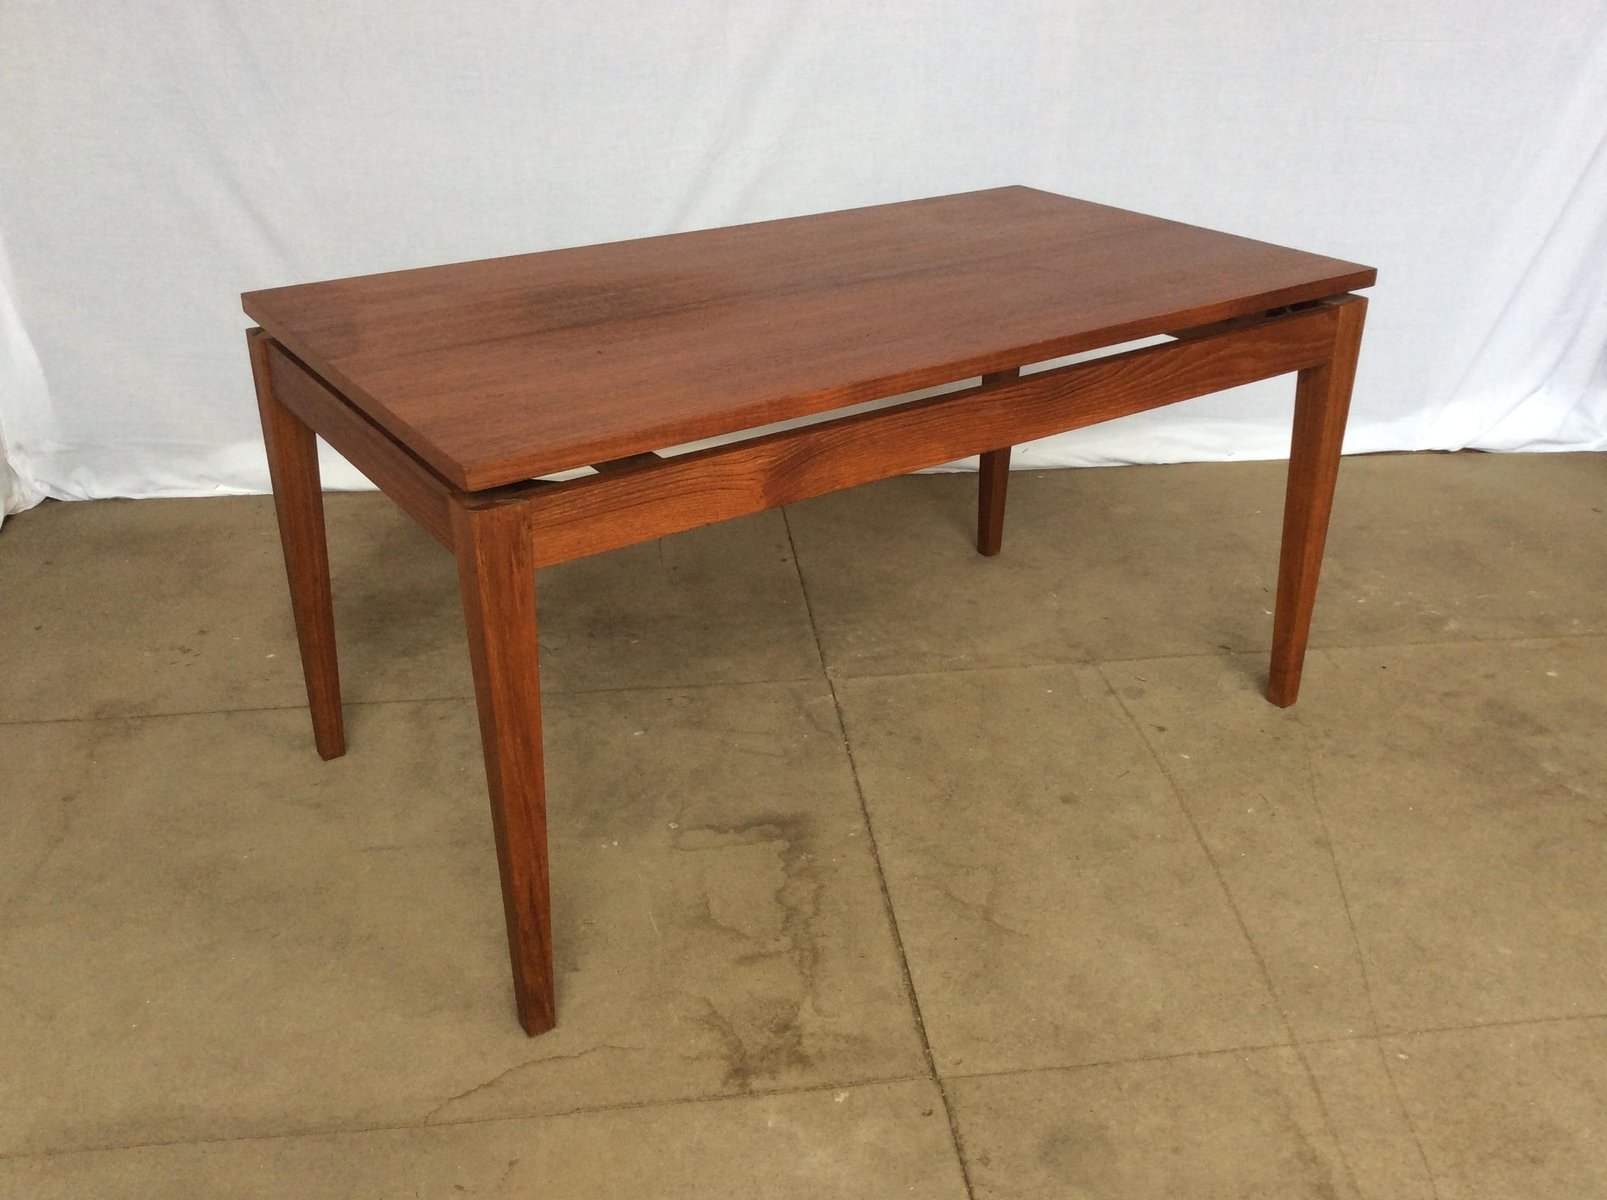 Teak Floating Top Coffee Table 1970s for sale at Pamono